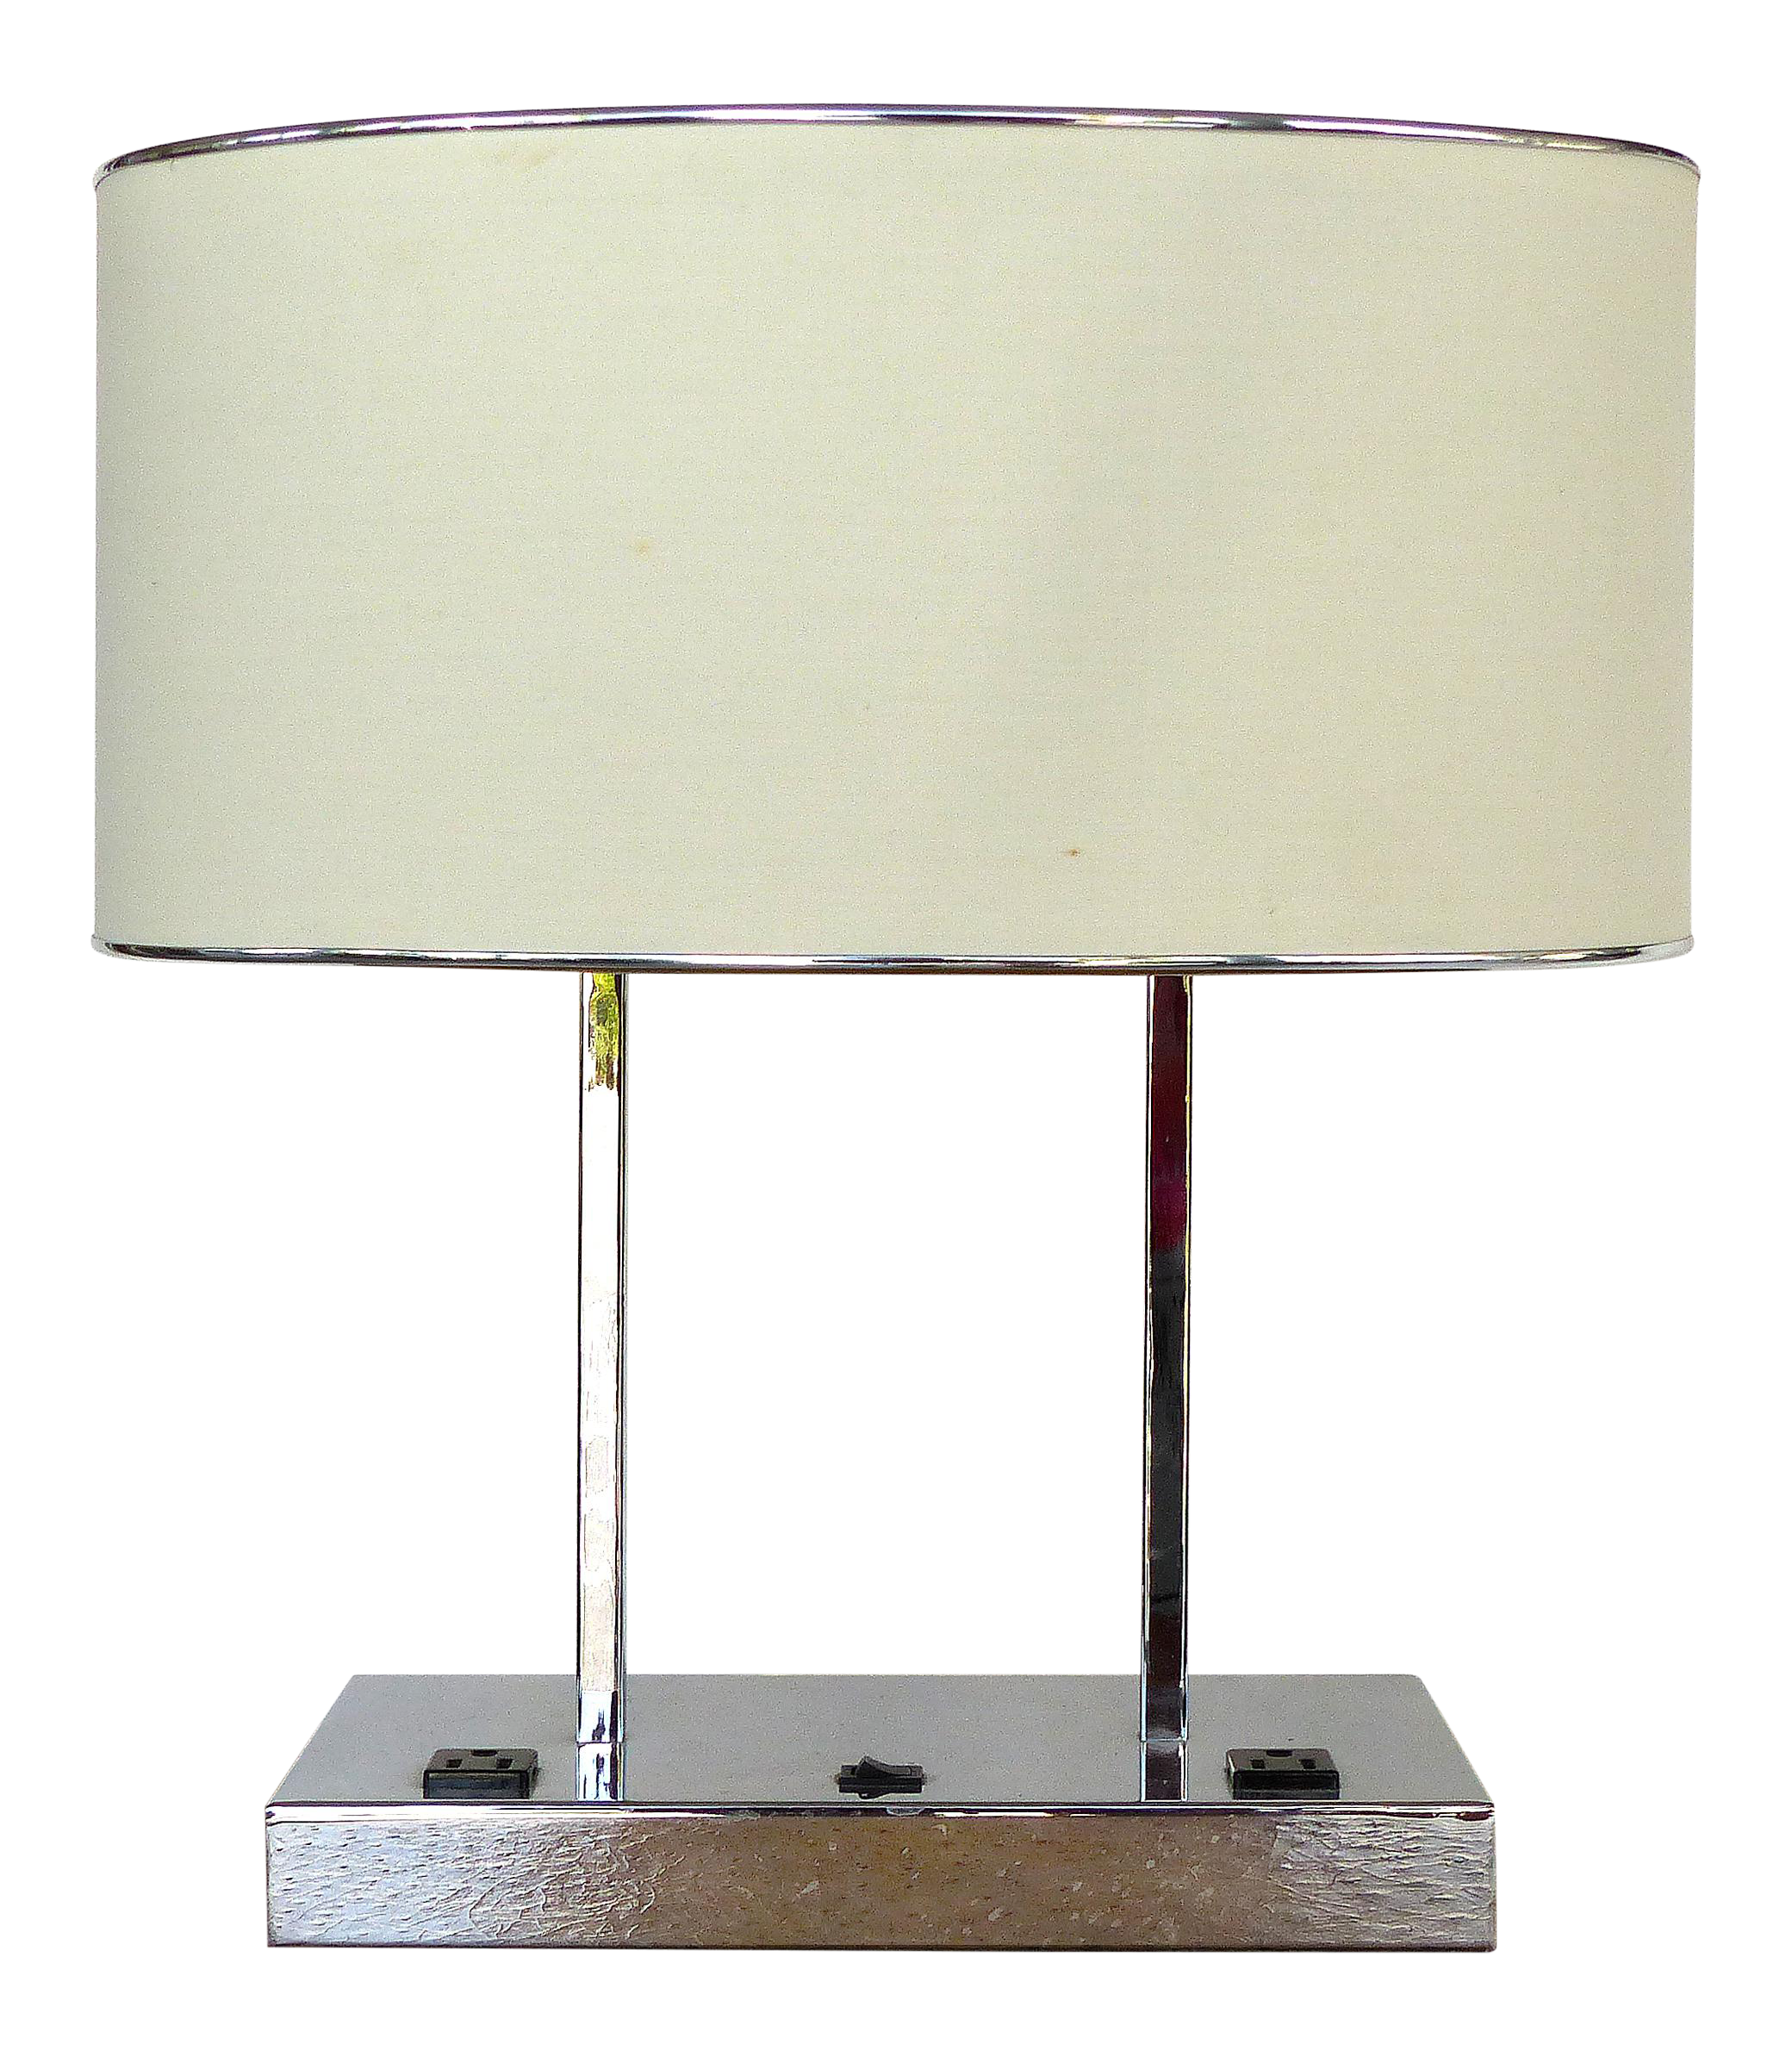 Contemporary Chrome Desk Table Lamp W 2 Electrical Outlets Chairish